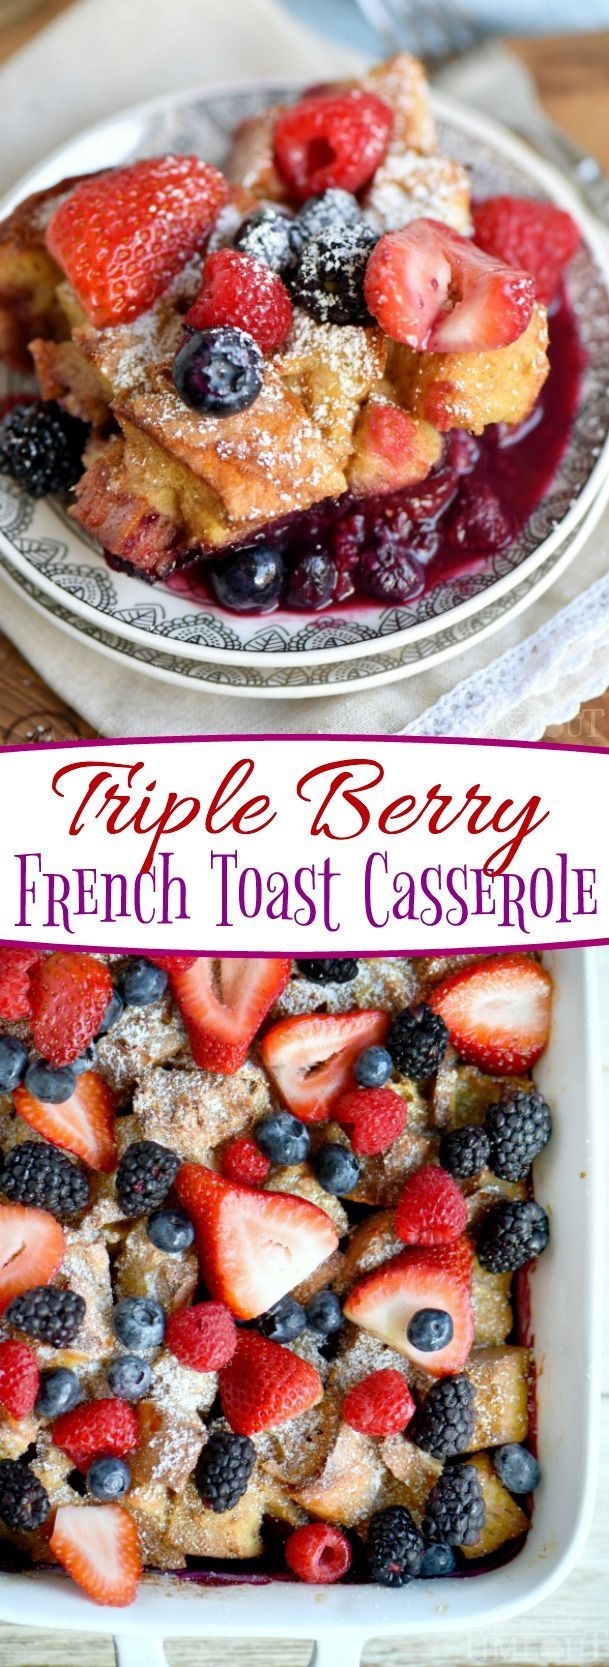 This Triple Berry French Toast Casserole is going to be a new family favorite! Incredibly easy and bursting with berry flavor! Great for breakfast or brunch, Christmas, Easter, Mother's Day and more! // Mom On Timeout